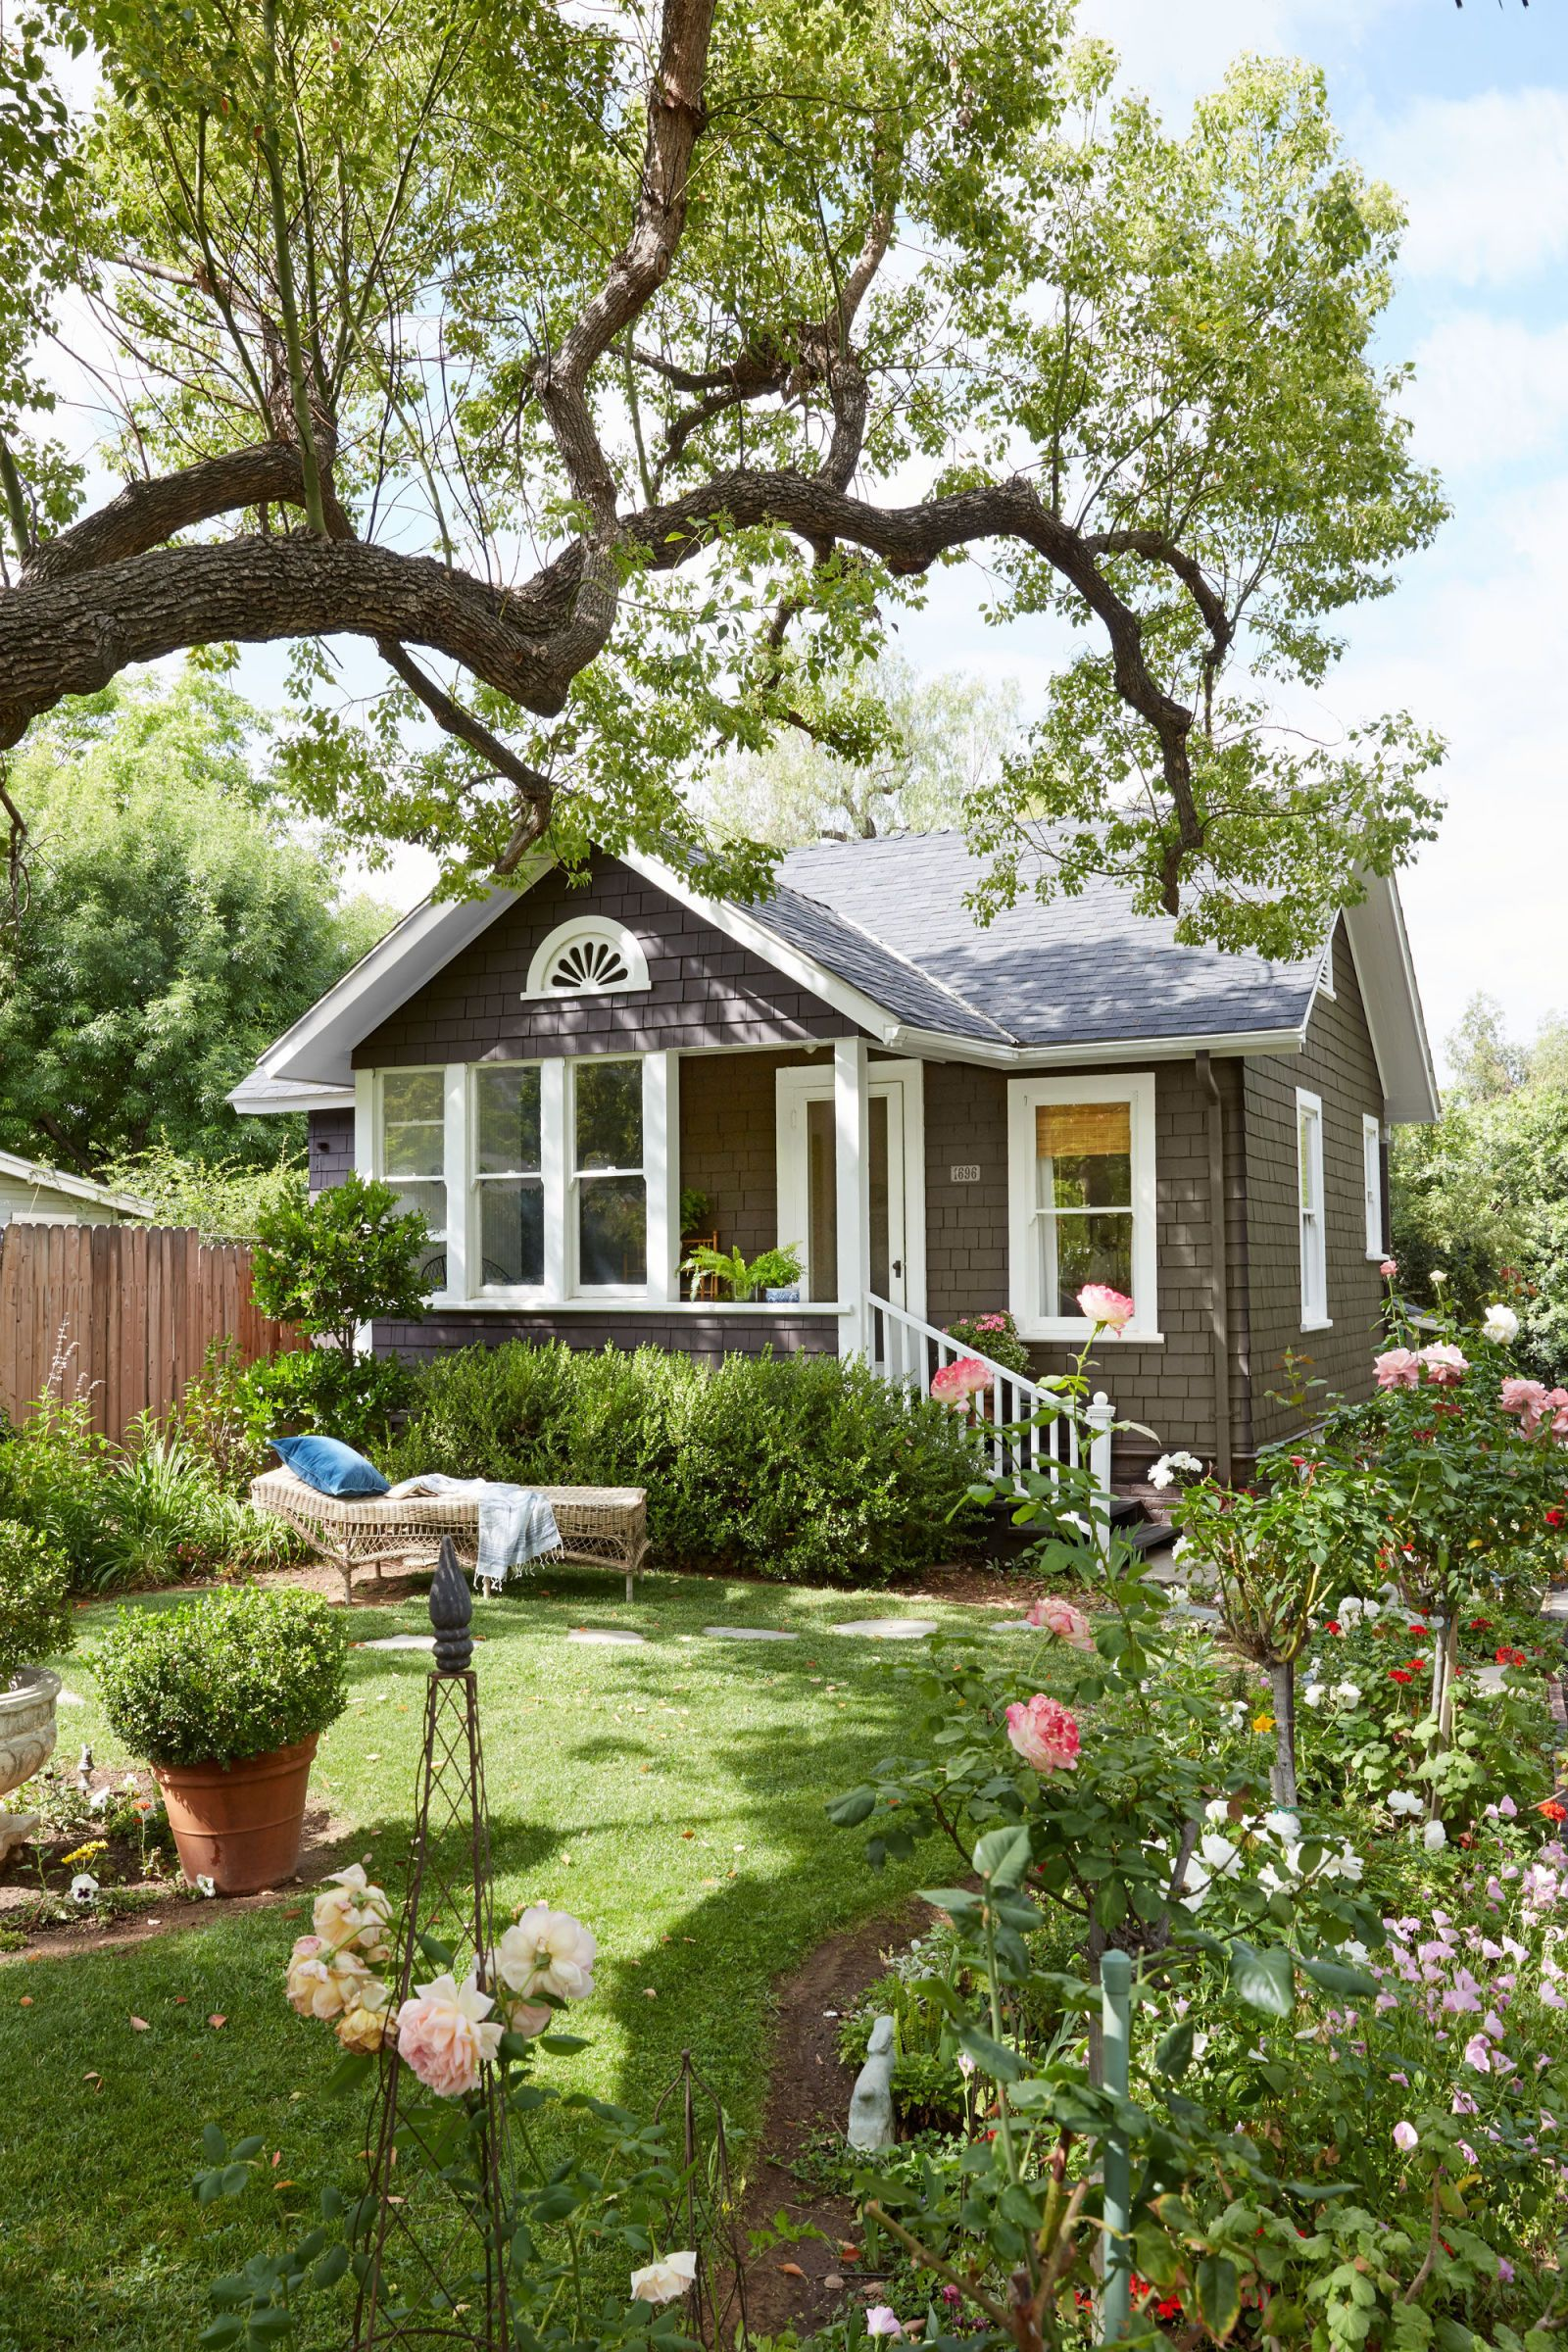 ranch home remodel annie selke ranch house makeover home redesign 45+ Wonderful Victorian Tiny House Amazing Ideas #tinyhouse  #tinyhousedesign #tinyhouseideas Lush Garden